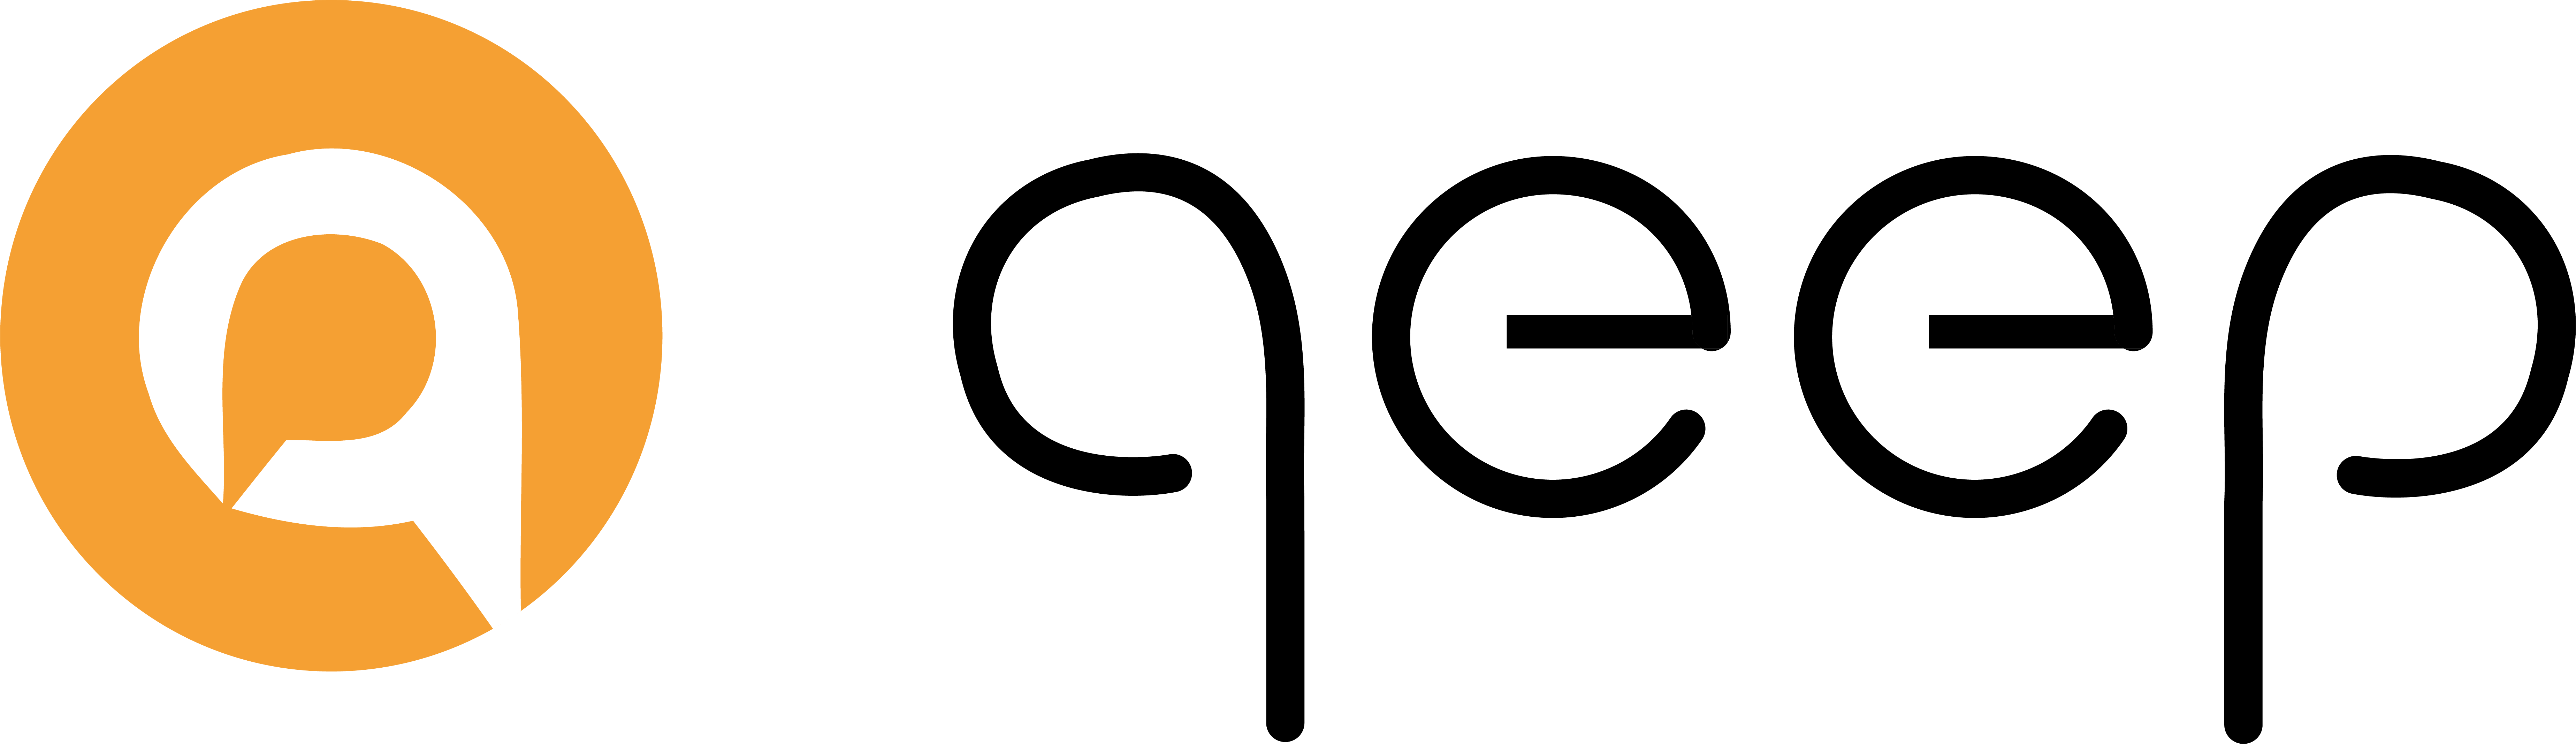 Qeep chat site